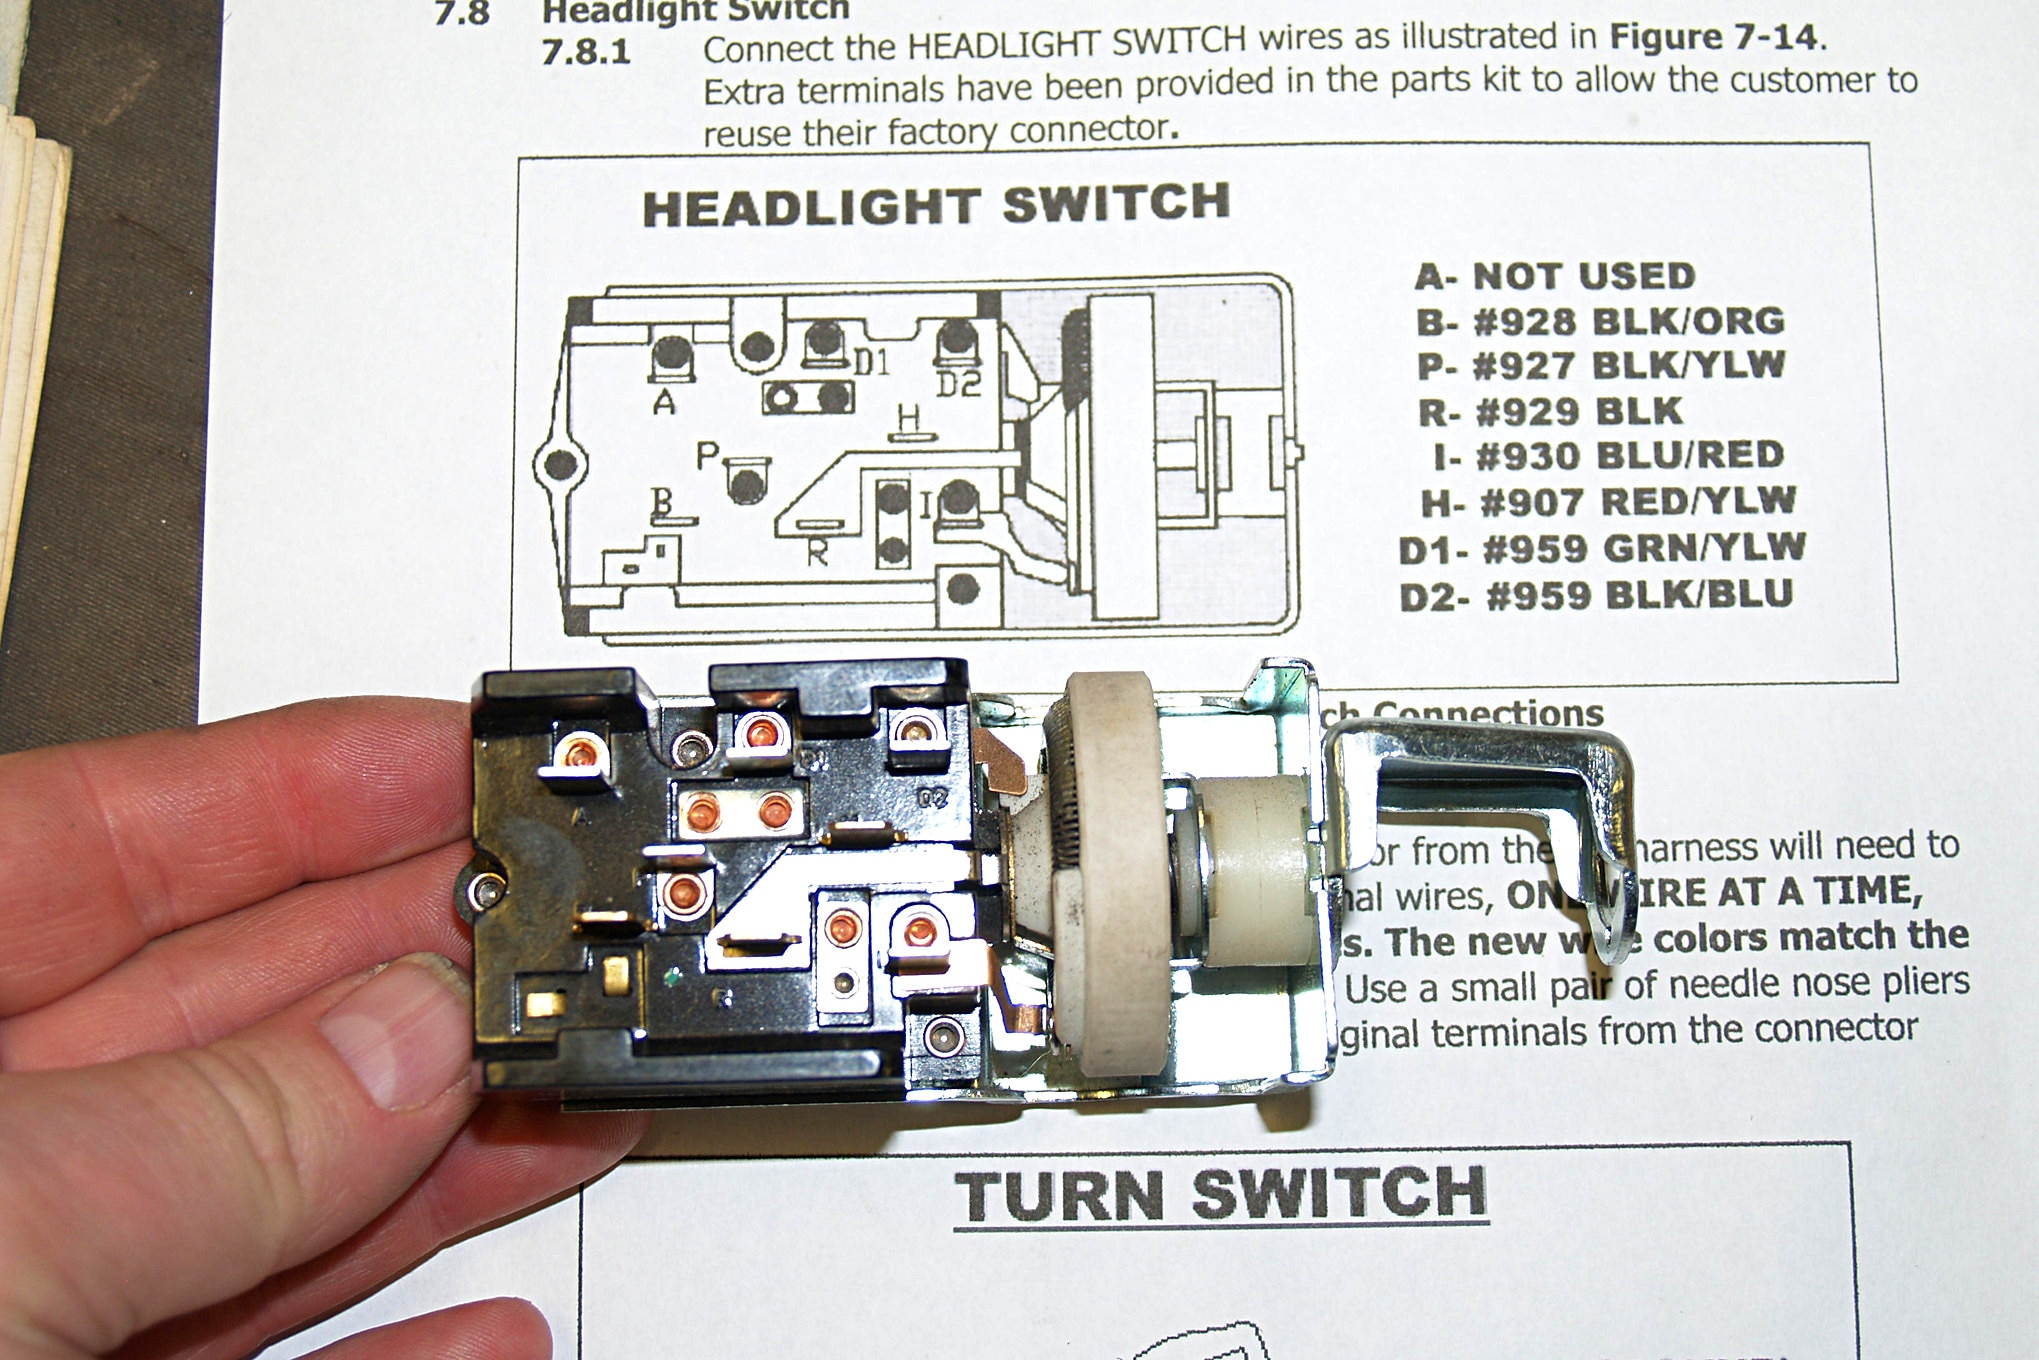 medium resolution of electrical gremlins and more vintage mustang tech questions and answers headlight switch wiring pigtail kit includes 1 headlight switch